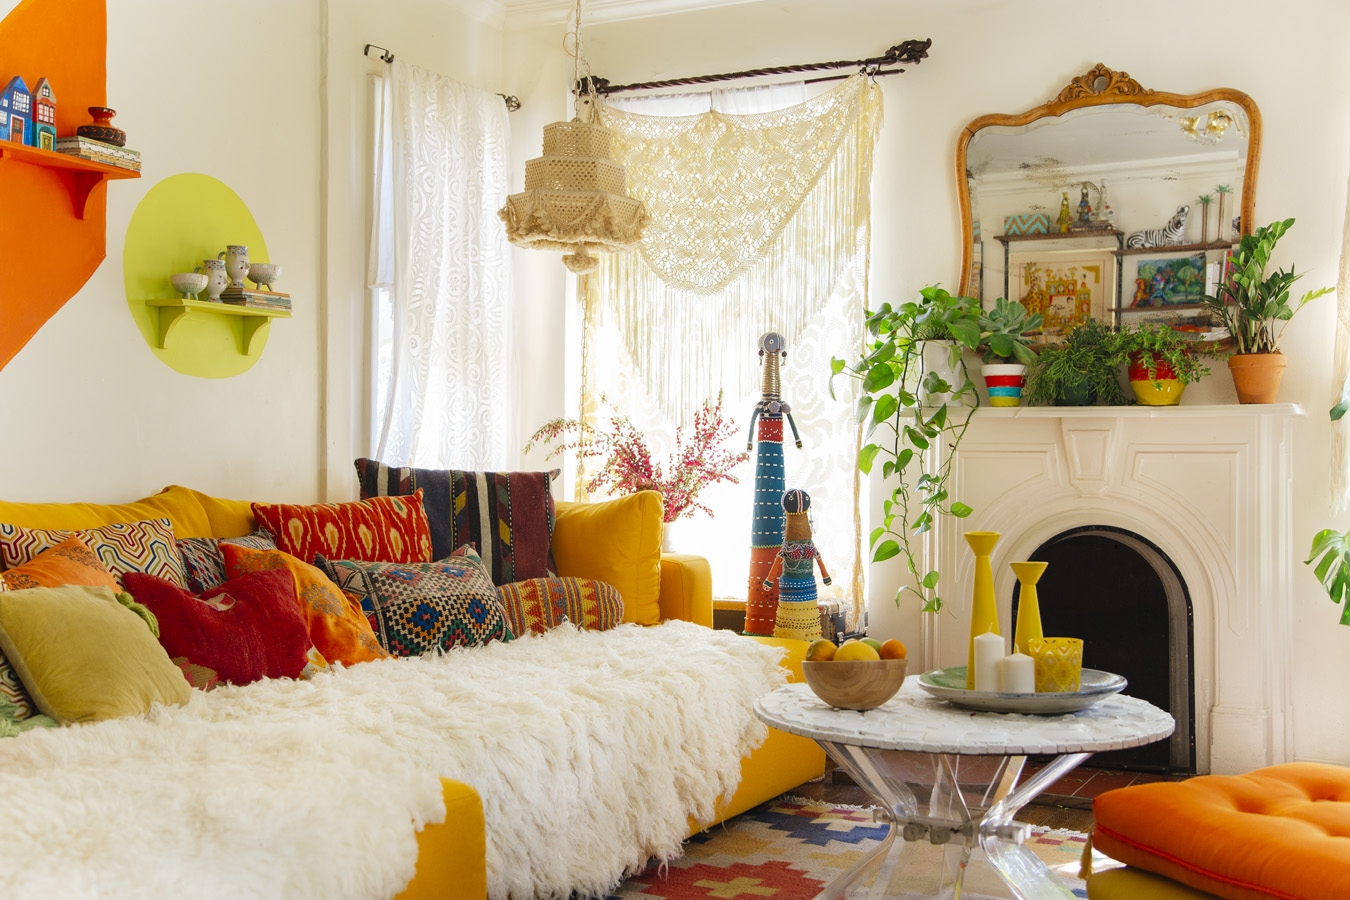 Photo from the book The New Bohemians: Cool and Collected Homes.  A Living room with white walls, a bright yellow couch, white fur throw, and lots of yellow, orange, and lime green accessories